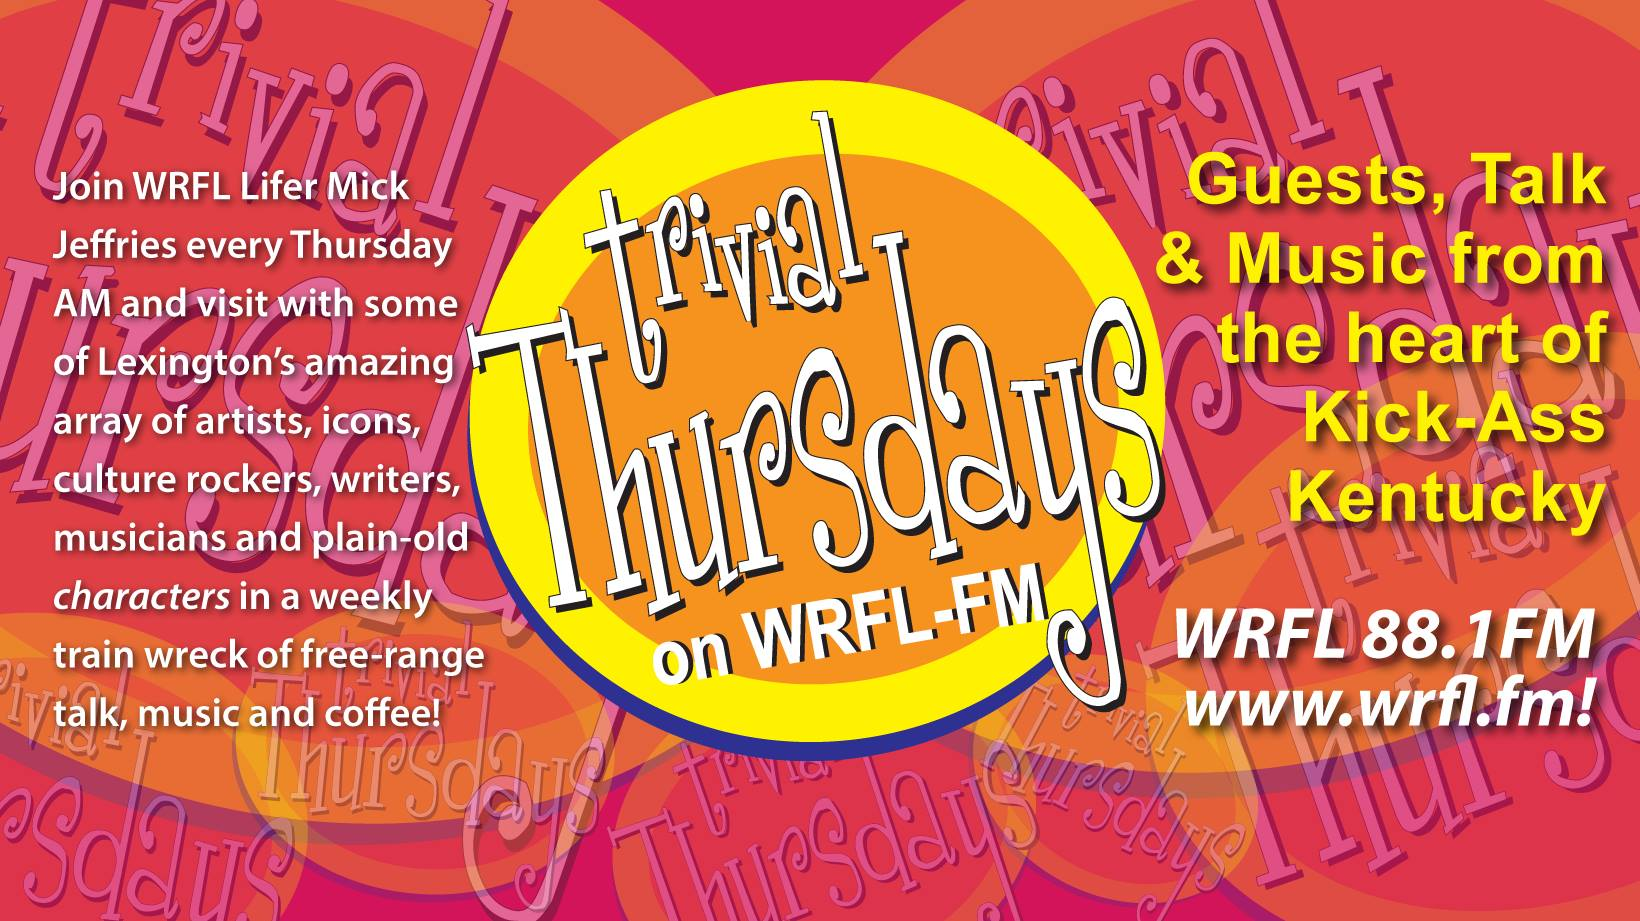 Sumoflam on LIVE in Studio Interview on WRFL in Lexington on Thursday, 11/29